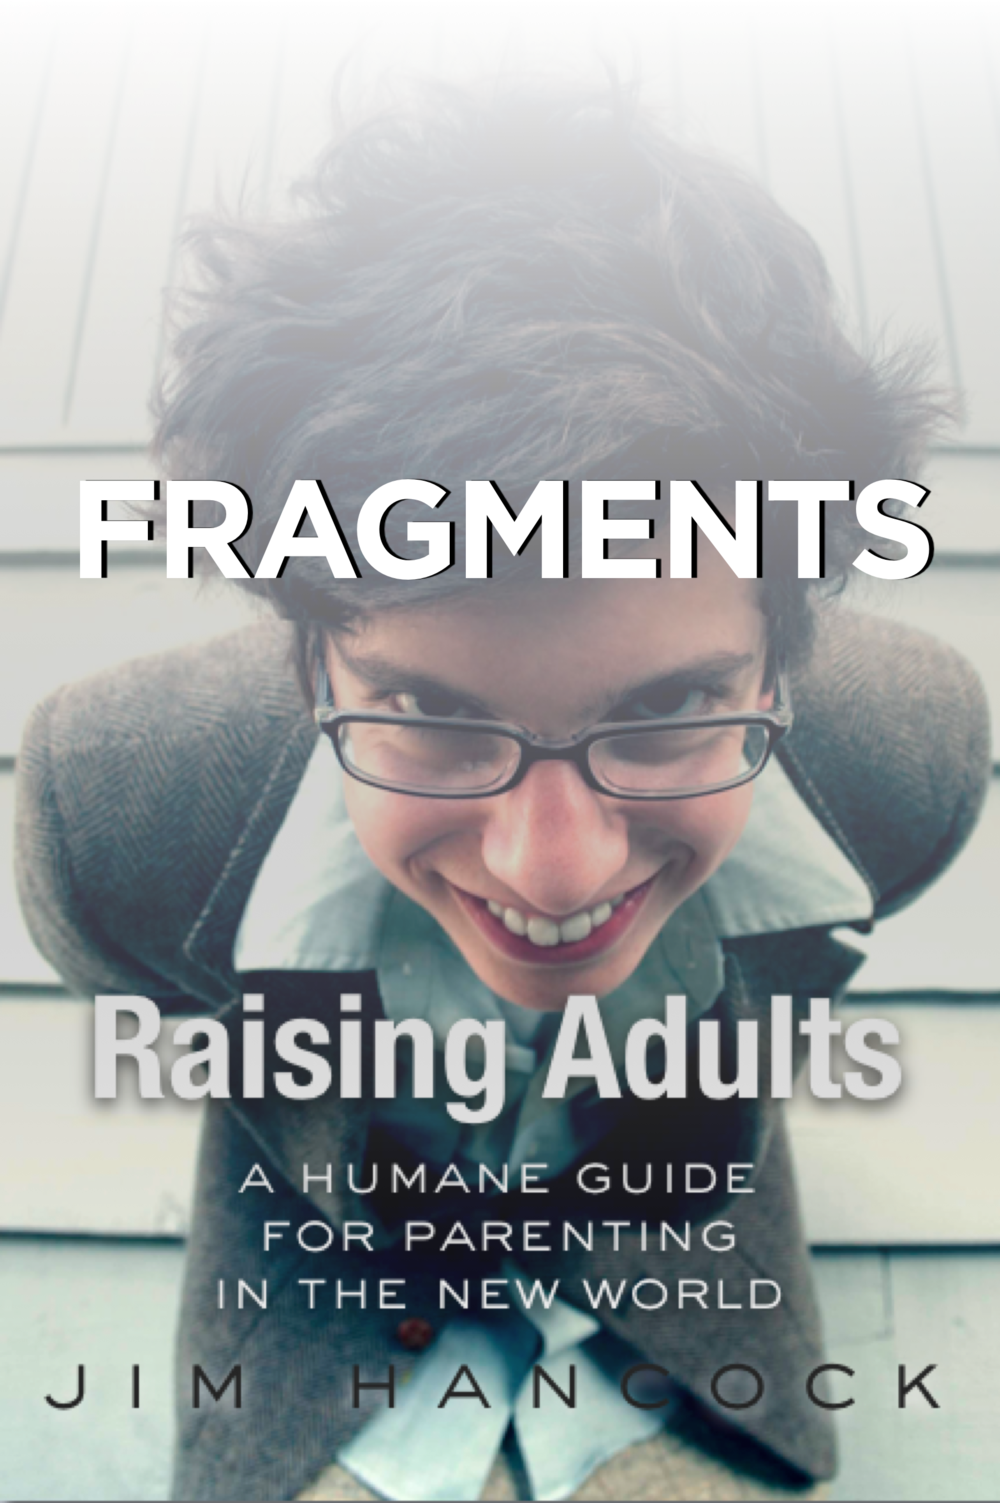 SUBSCRIBE to FRAGMENTS from RAISING ADULTS